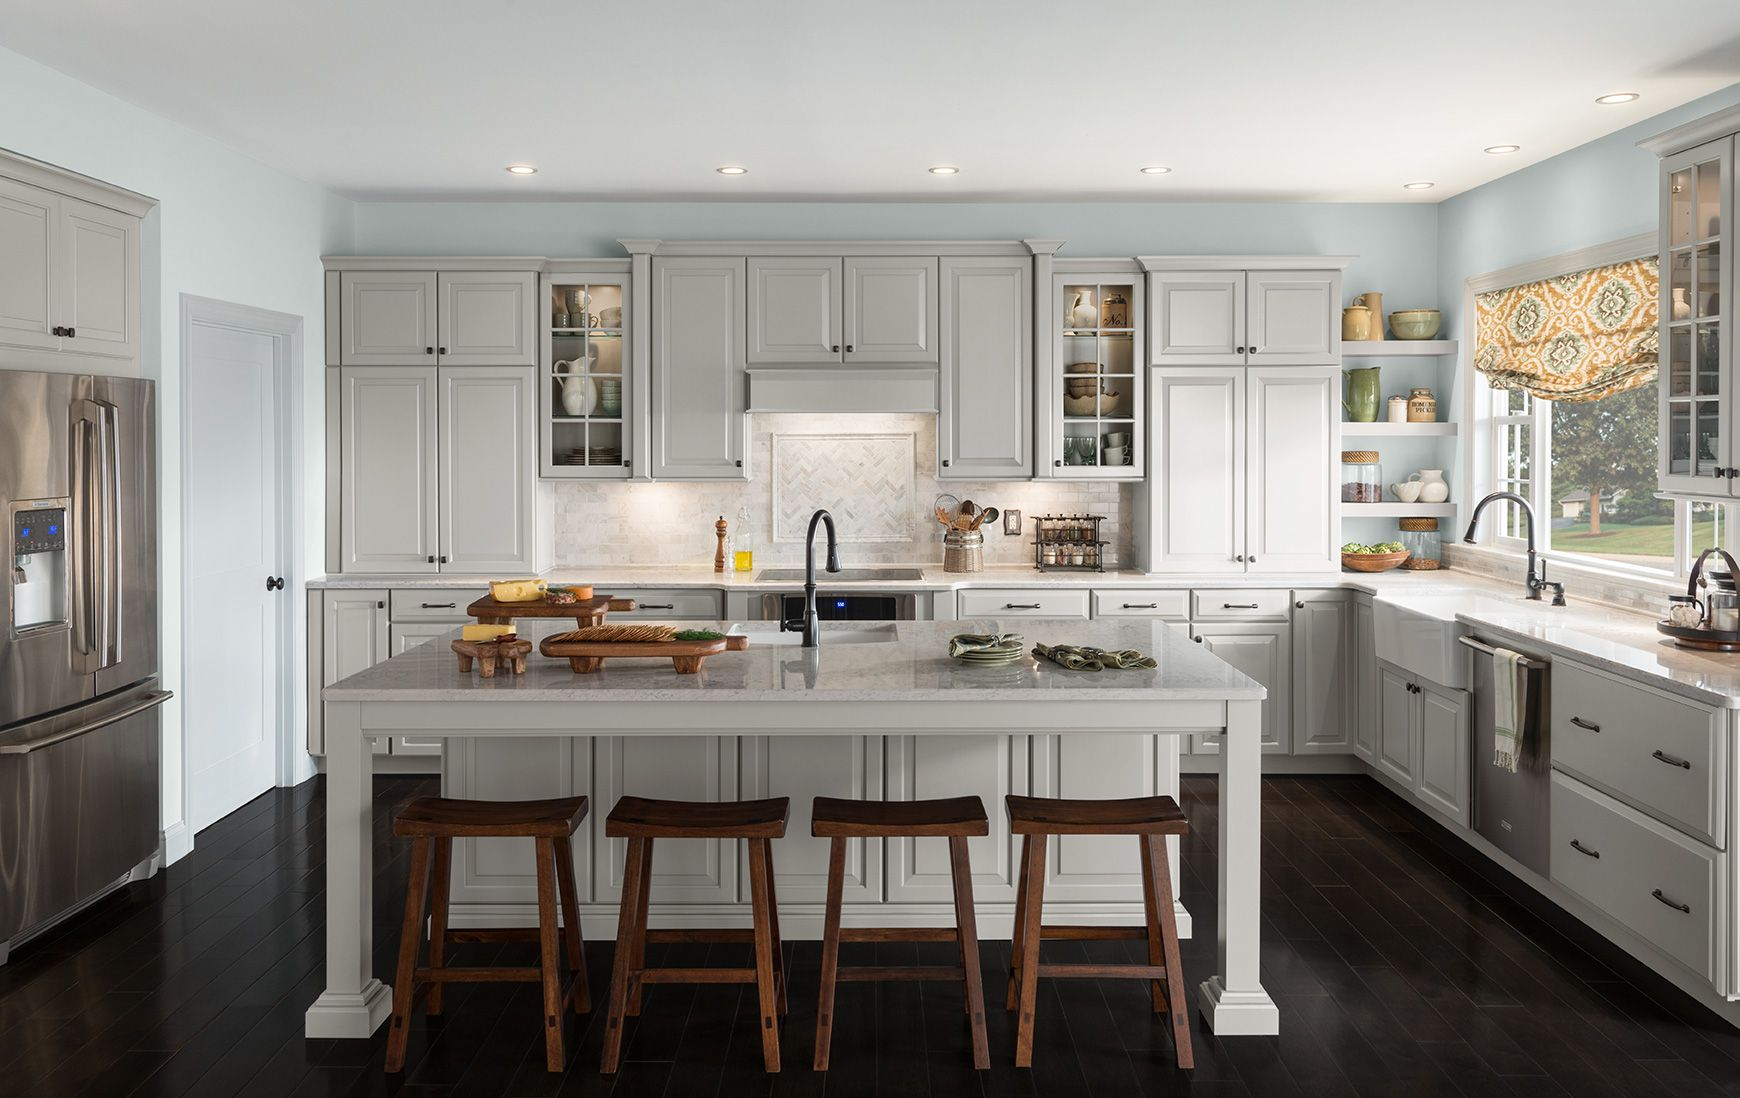 Shenandoah Cabinetry Kitchen Painted Stoned Winchester Door Kitchen Cabinets Home Depot Black Kitchen Cabinets Hickory Kitchen Cabinets